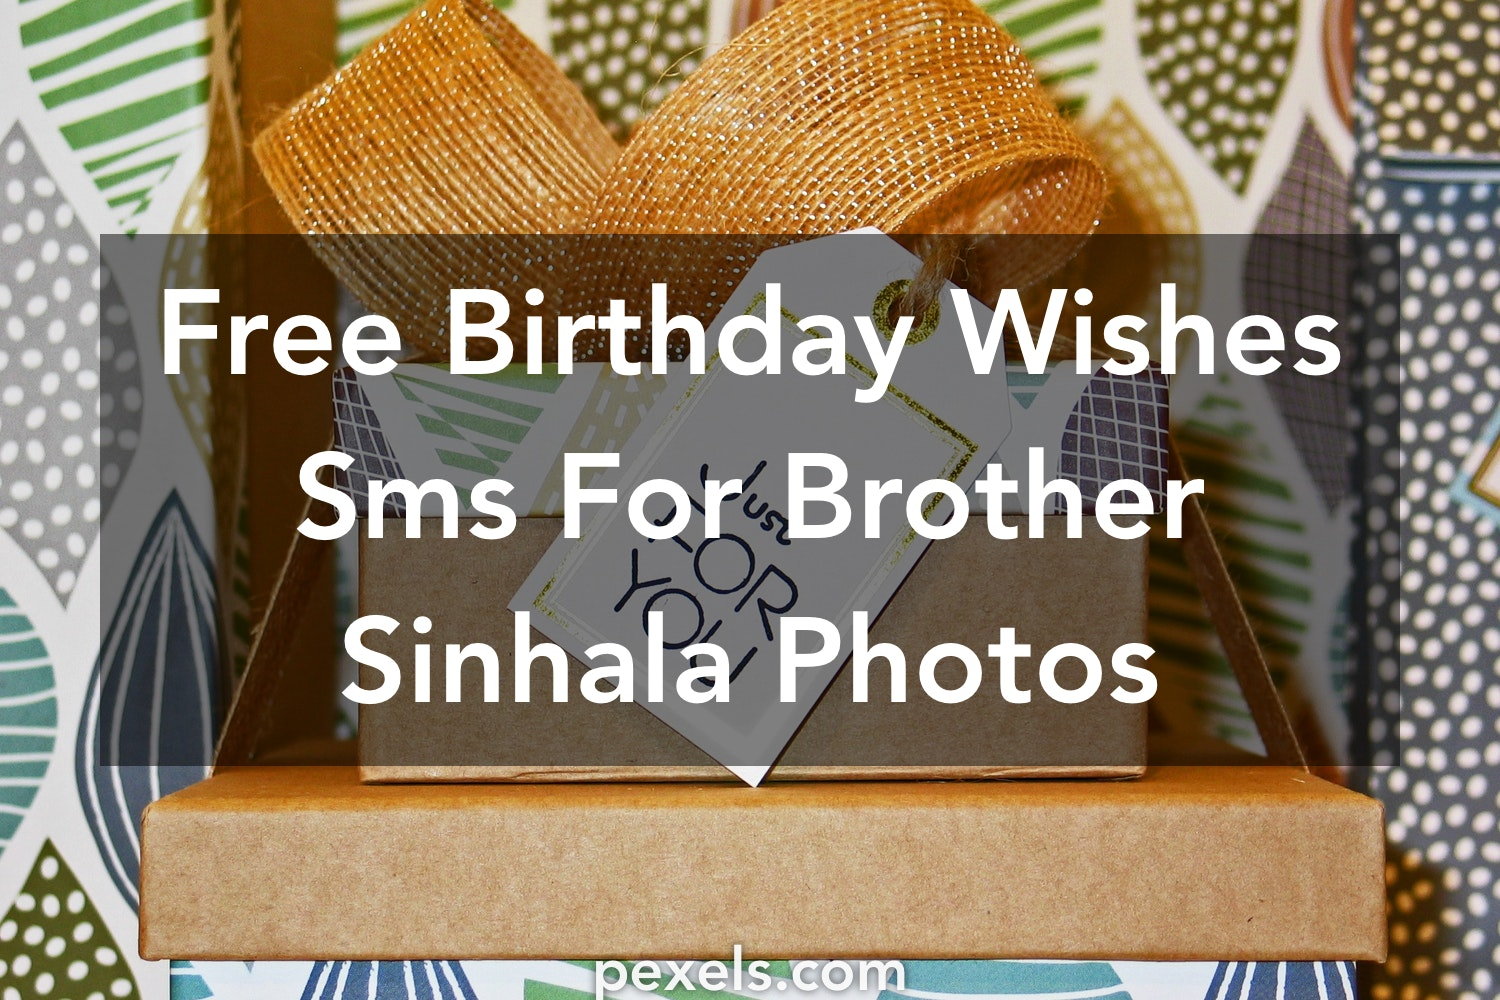 200 Amazing Birthday Wishes Sms For Brother Sinhala Photos Pexels Free Stock